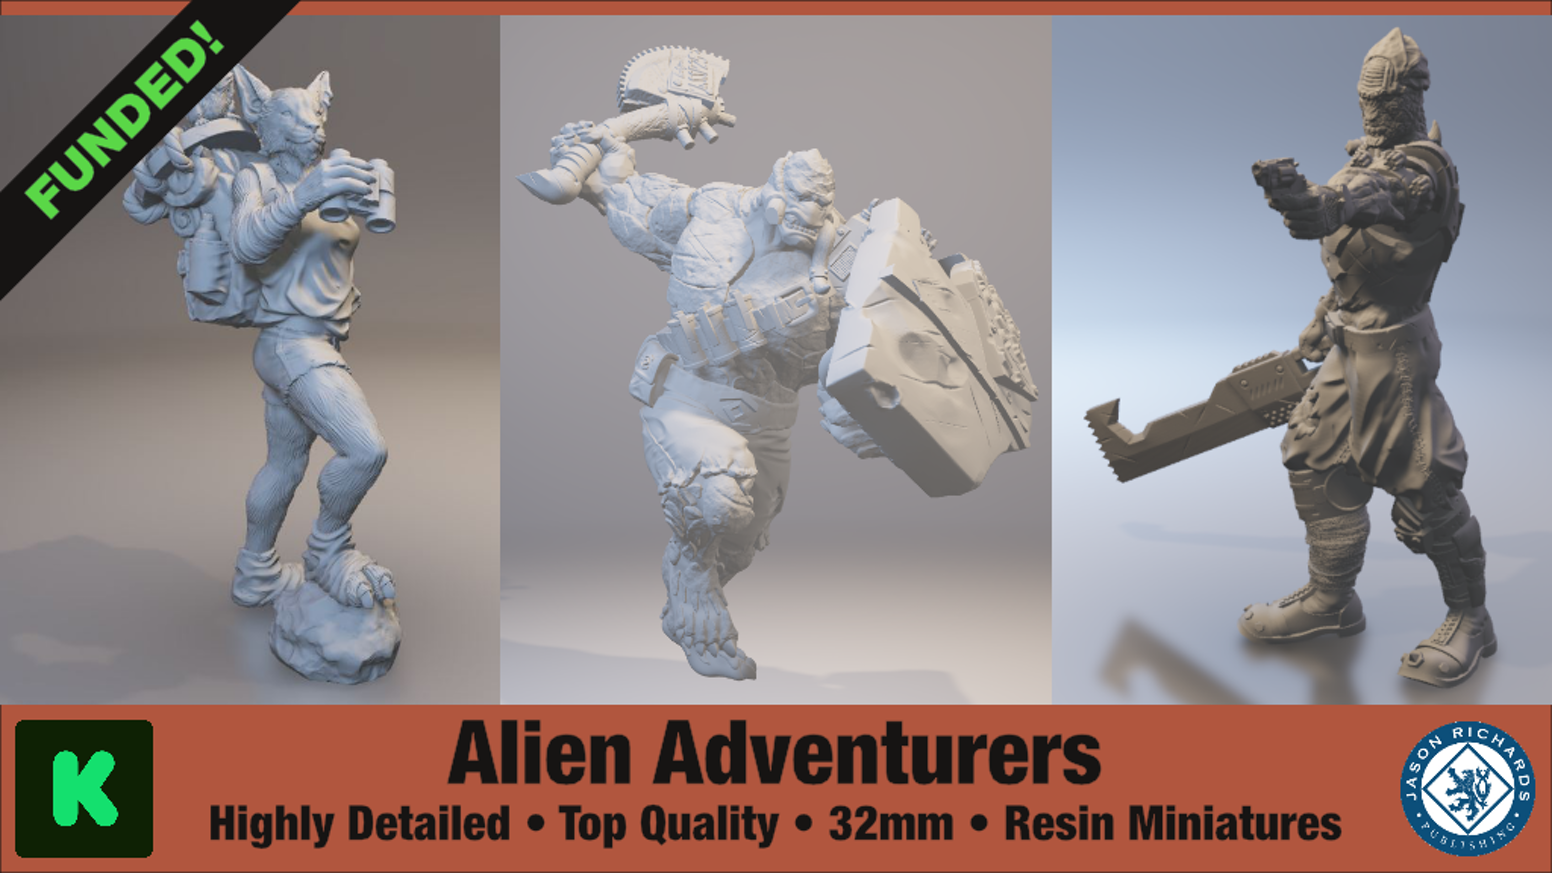 A collection of alien adventurer character minis. Cast in detailed 32 mm resin for tabletop gamers, collectors, and painters.